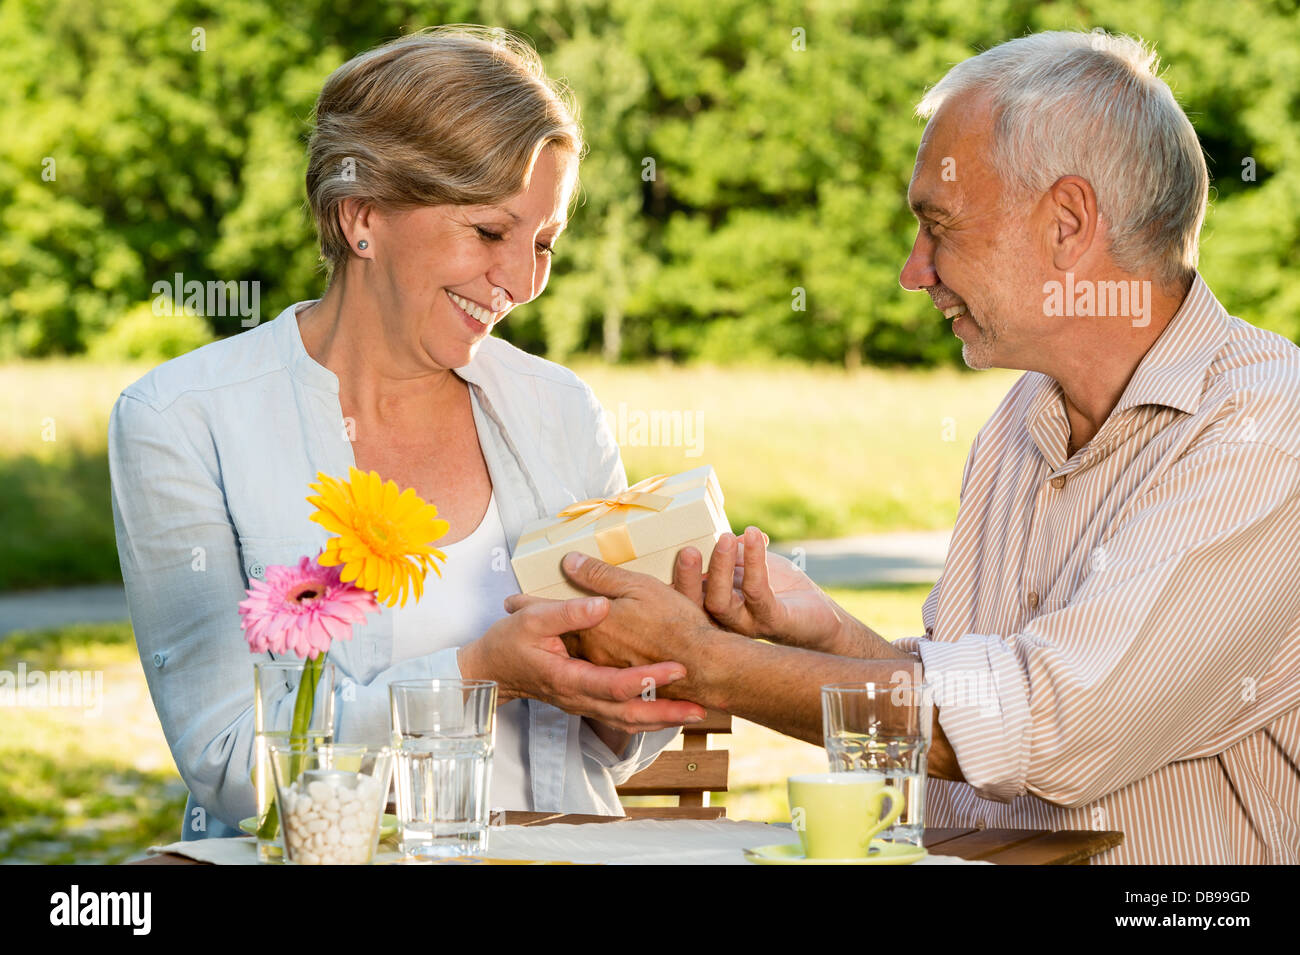 Pris sa retraite Caucasian couple smiling and holding gift outdoors Photo Stock